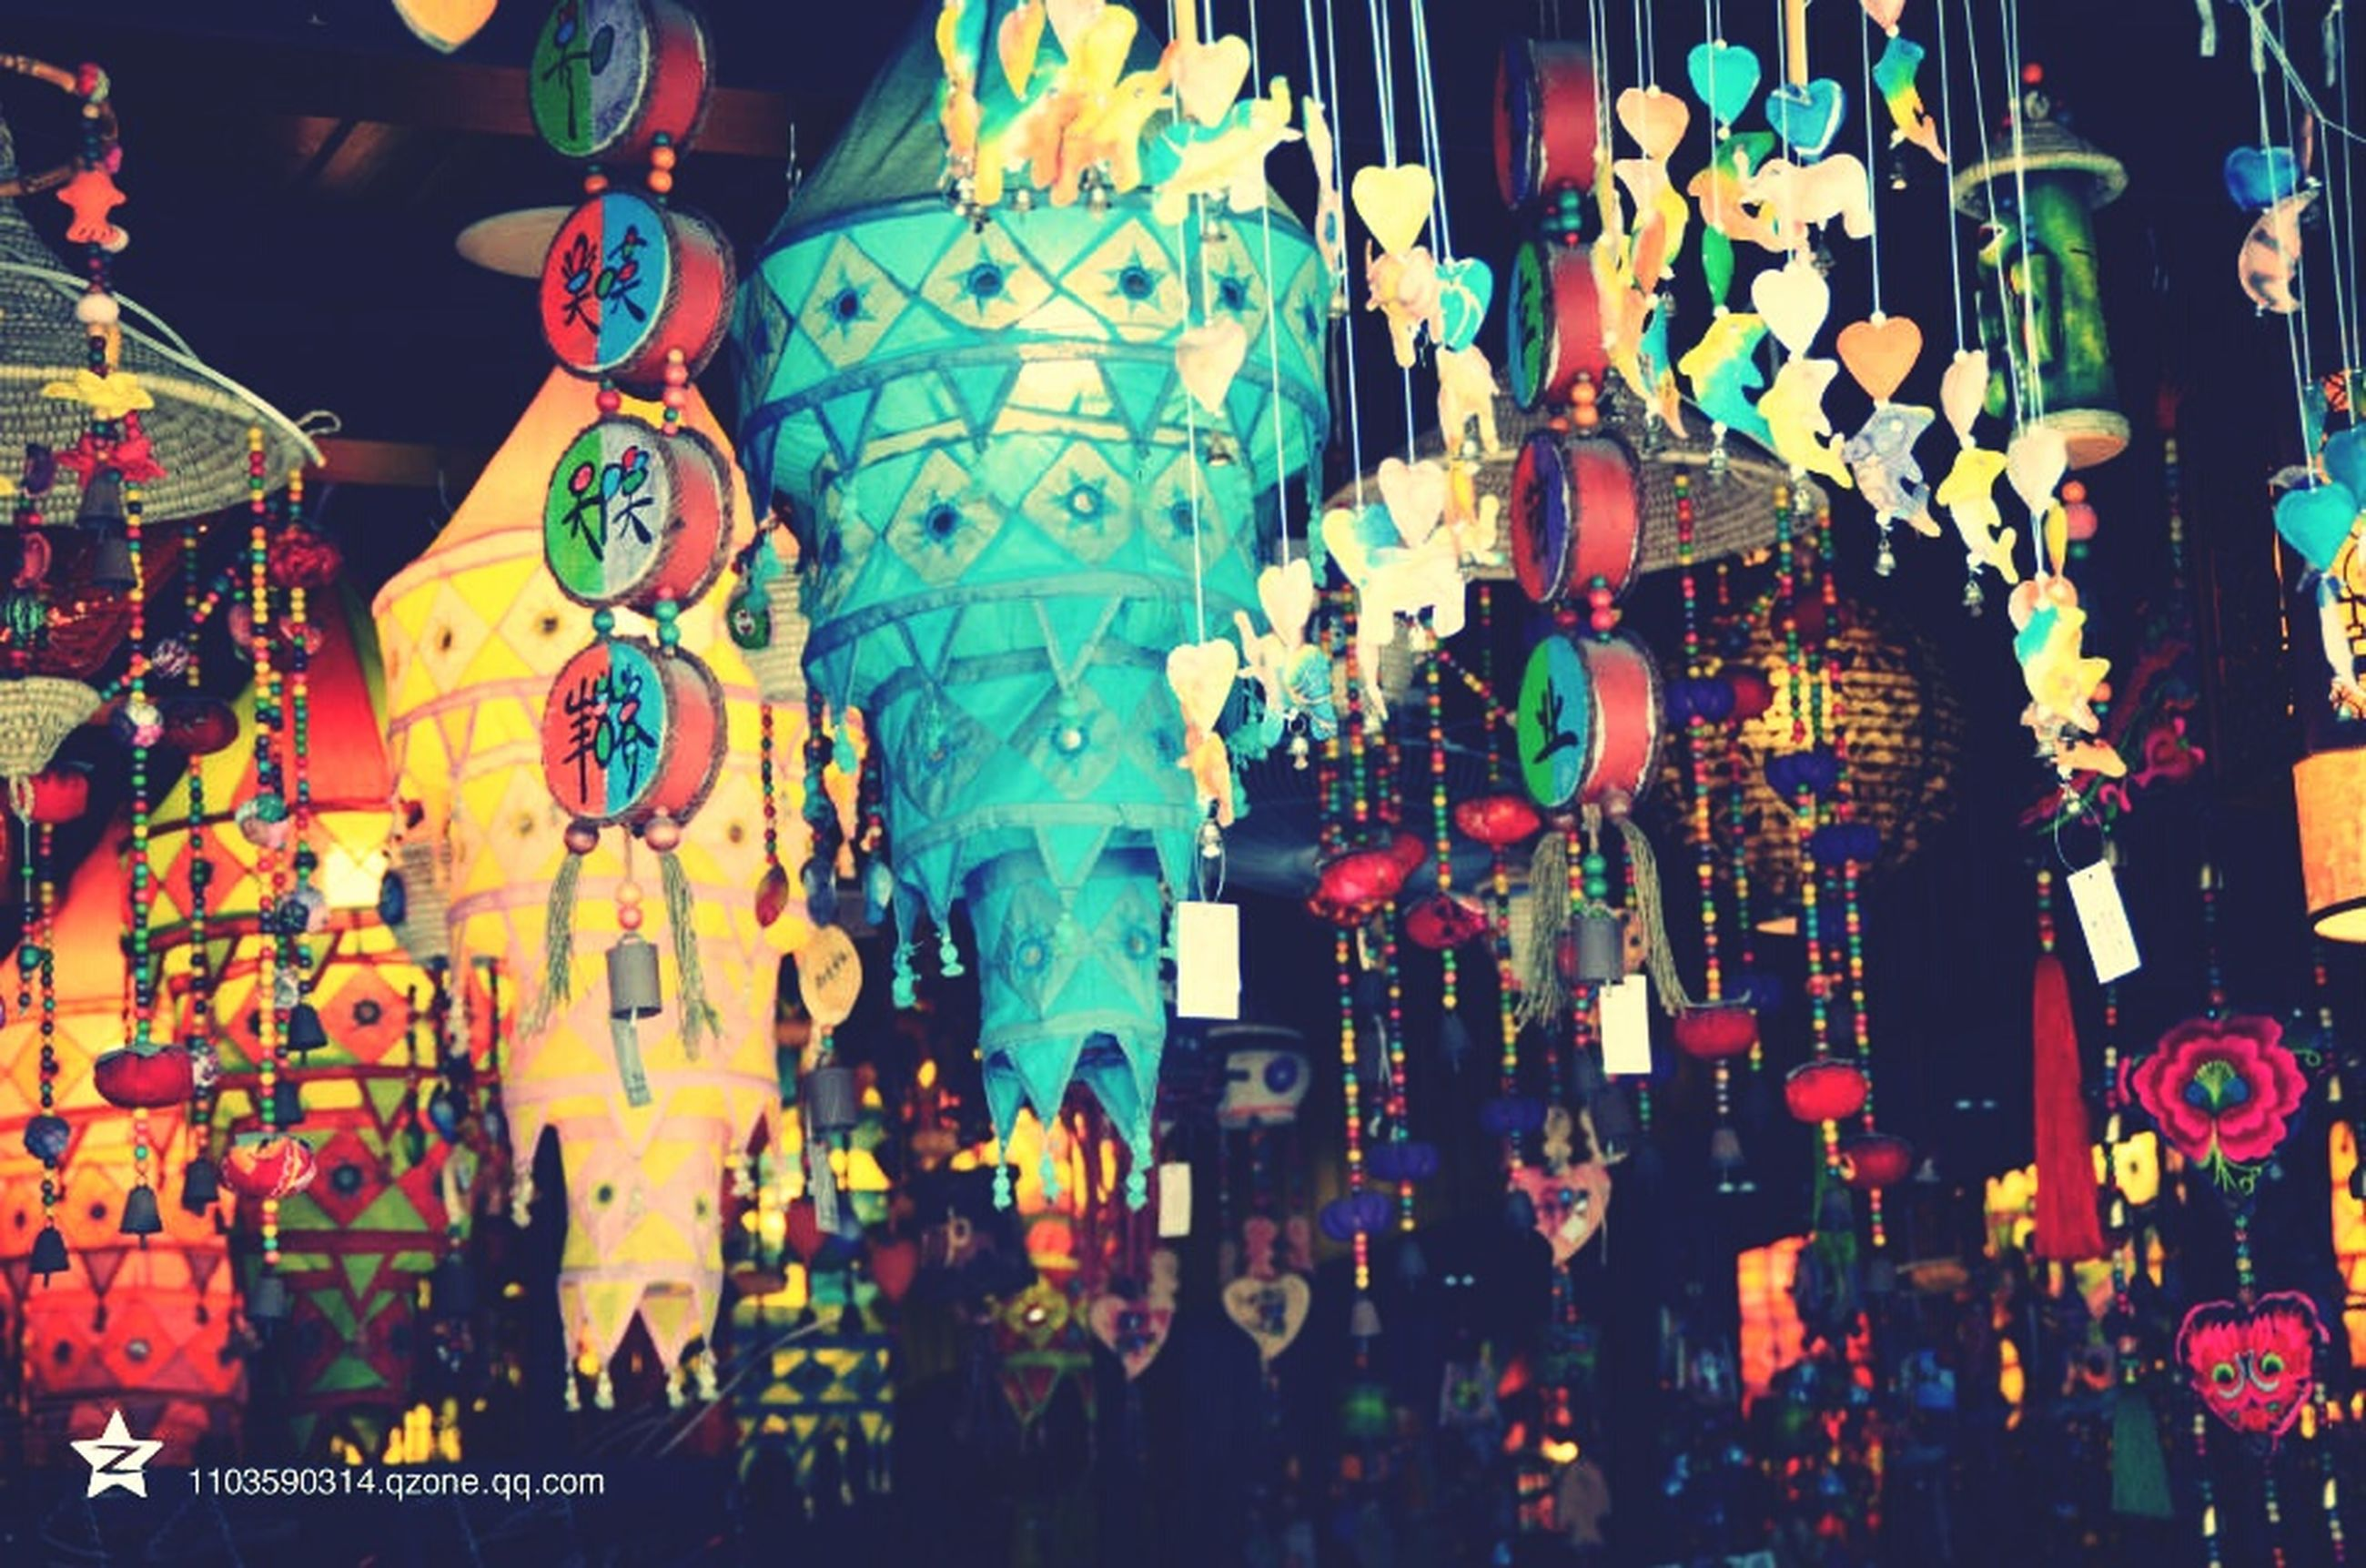 illuminated, hanging, indoors, retail, multi colored, art and craft, cultures, decoration, celebration, tradition, market, arts culture and entertainment, night, for sale, art, large group of people, human representation, creativity, market stall, store